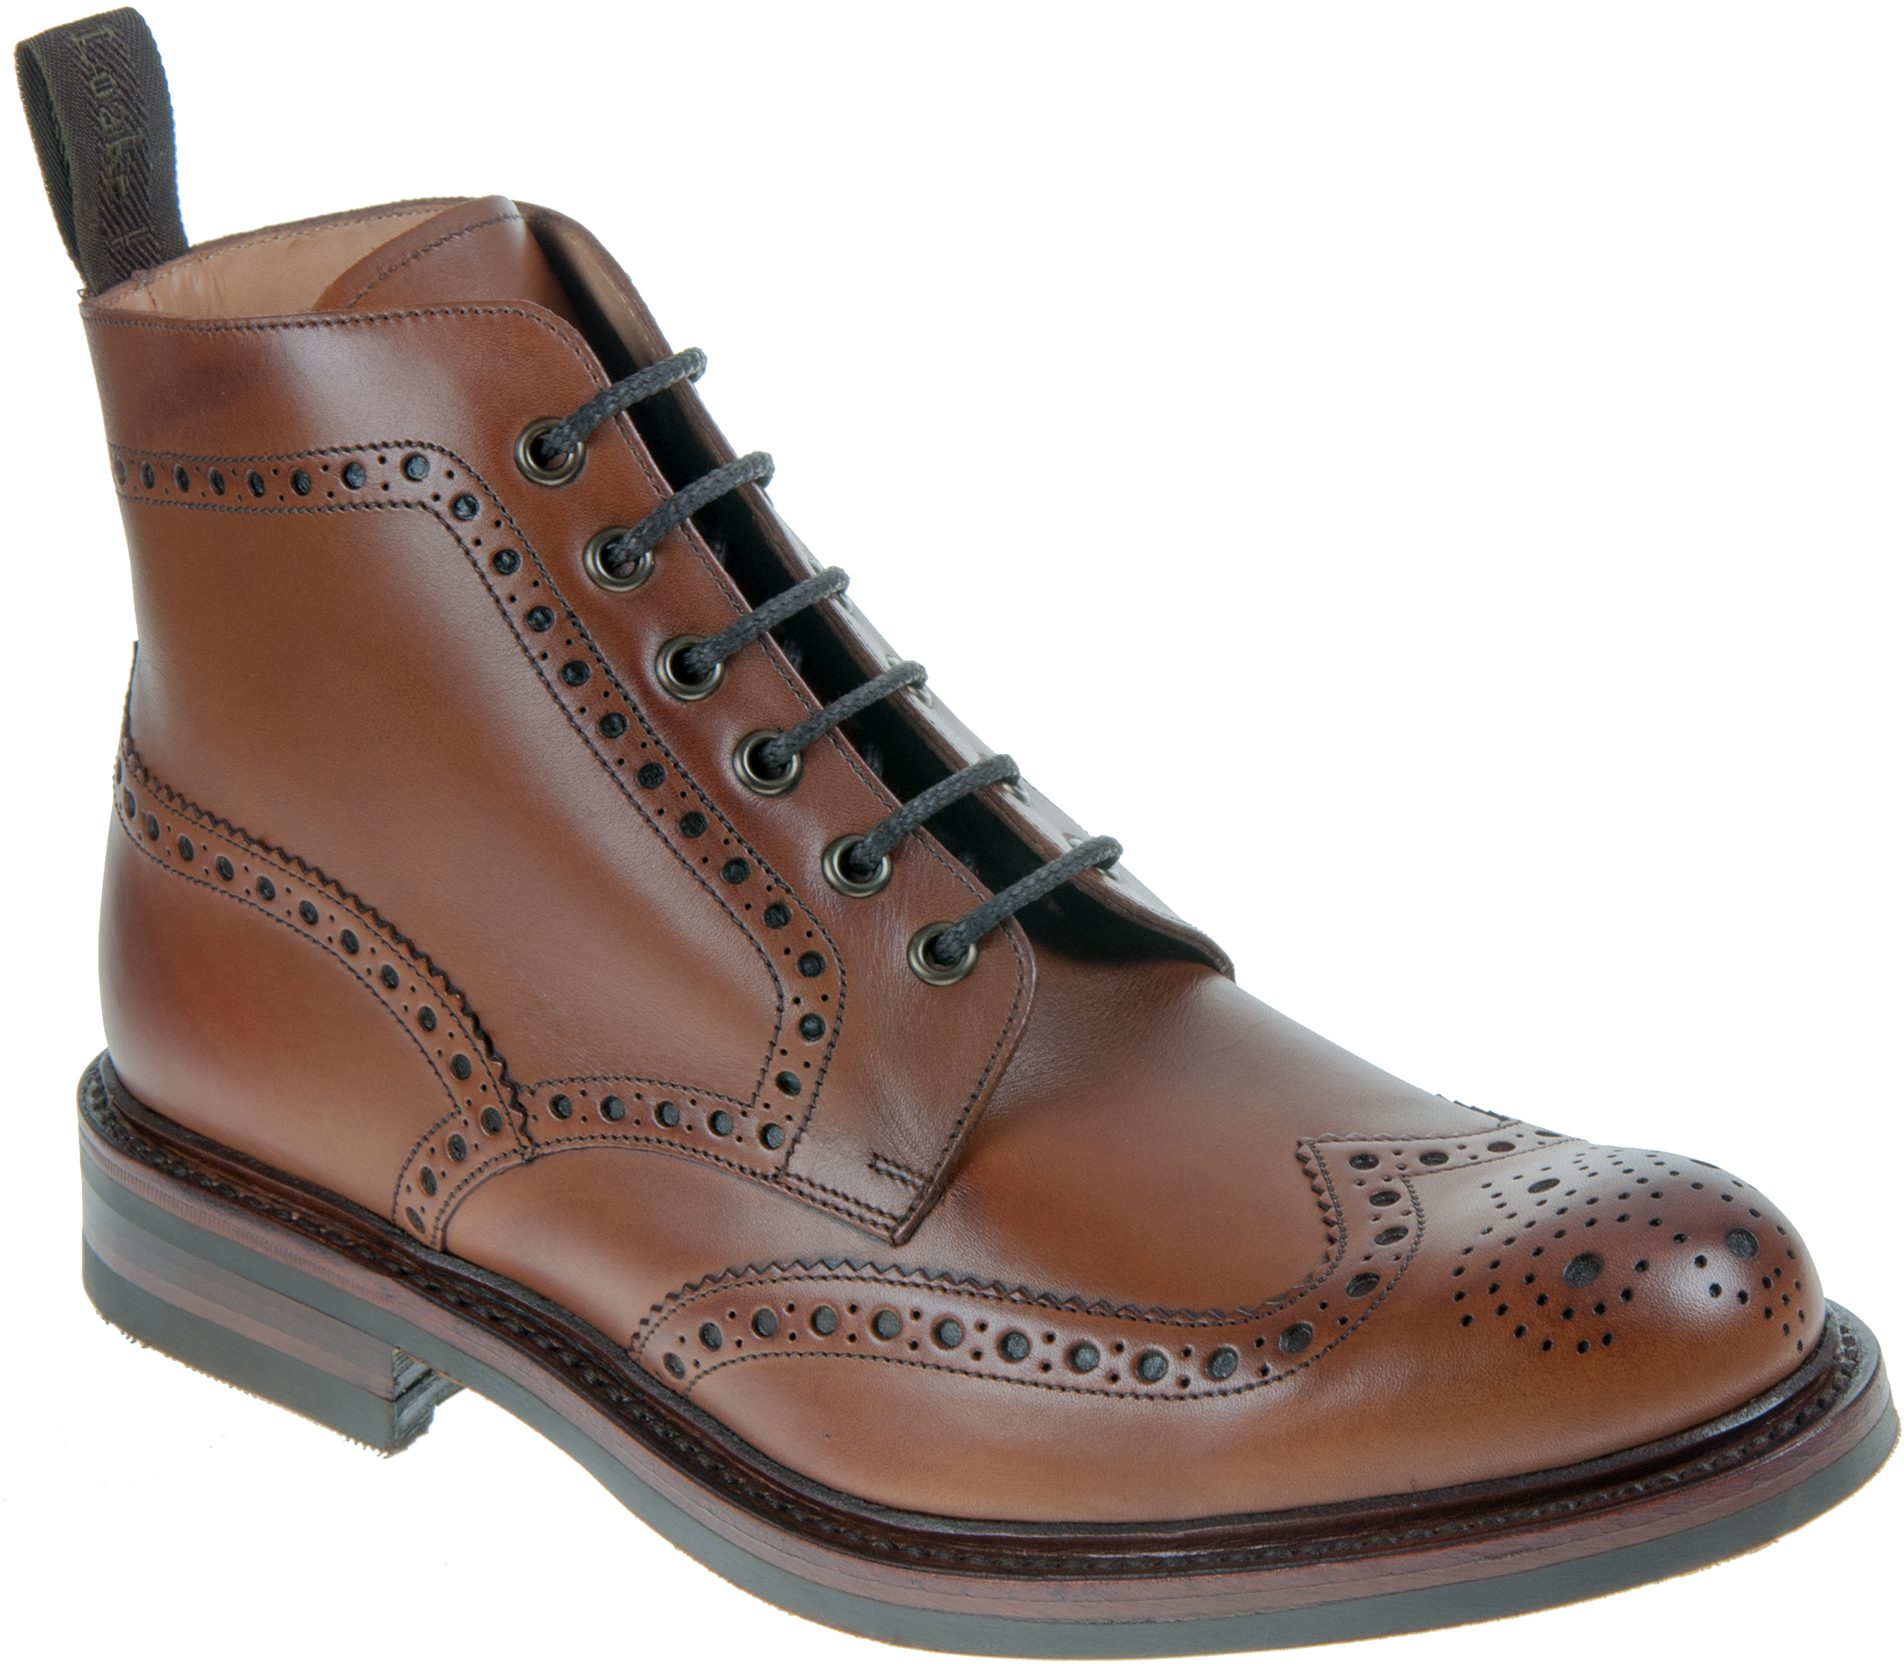 478a10a97df67 All Mens - Loake - Loake - Humphries Shoes